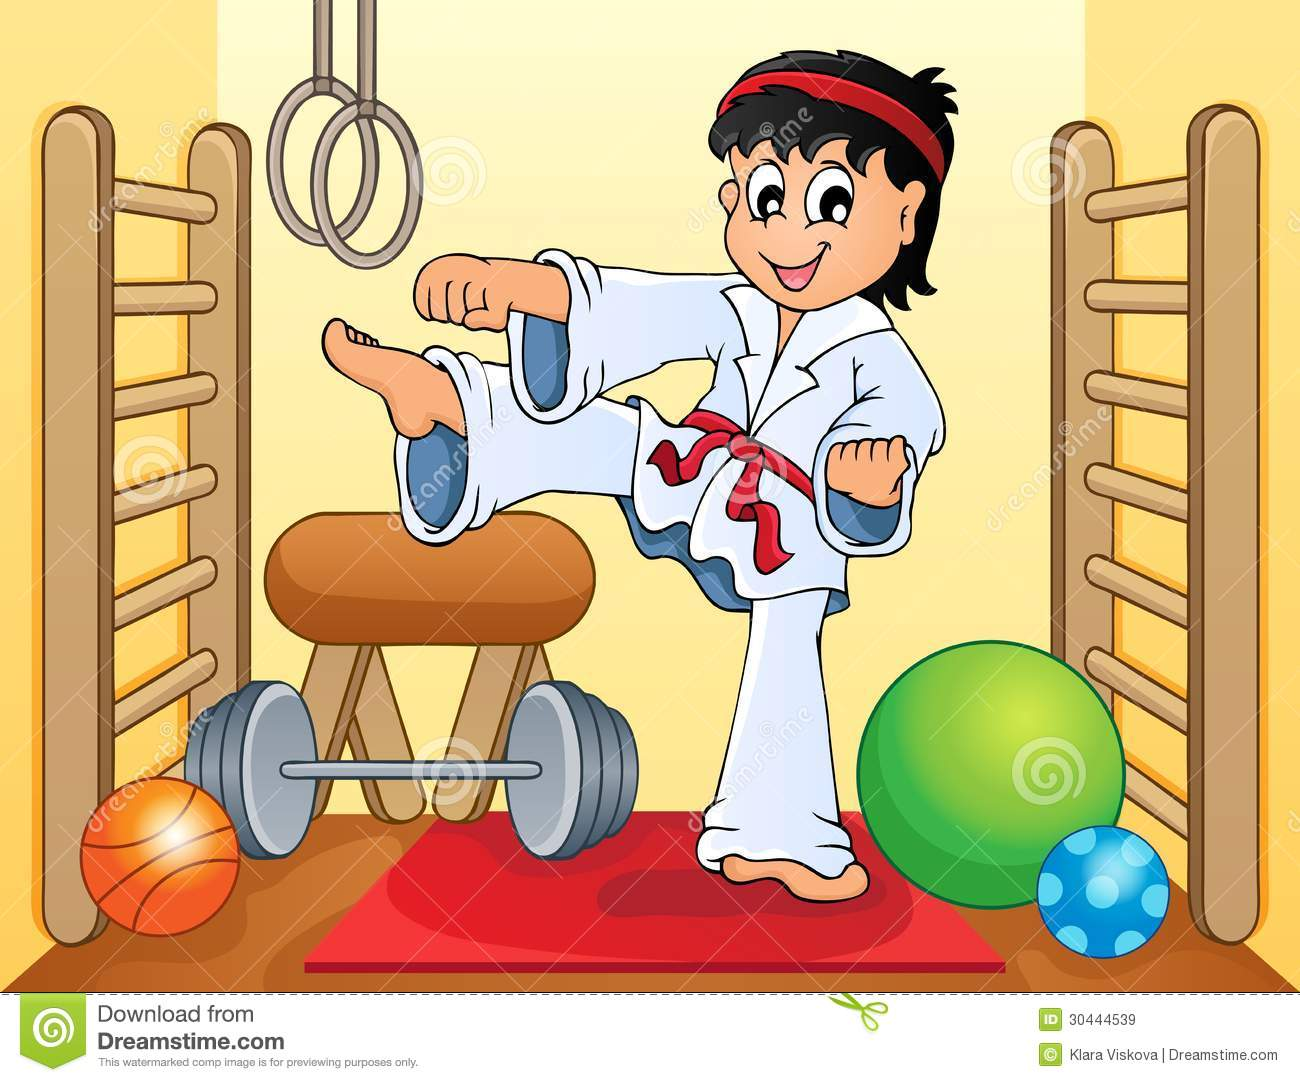 Sport and gym topic image 4 - eps10 vector illustration.